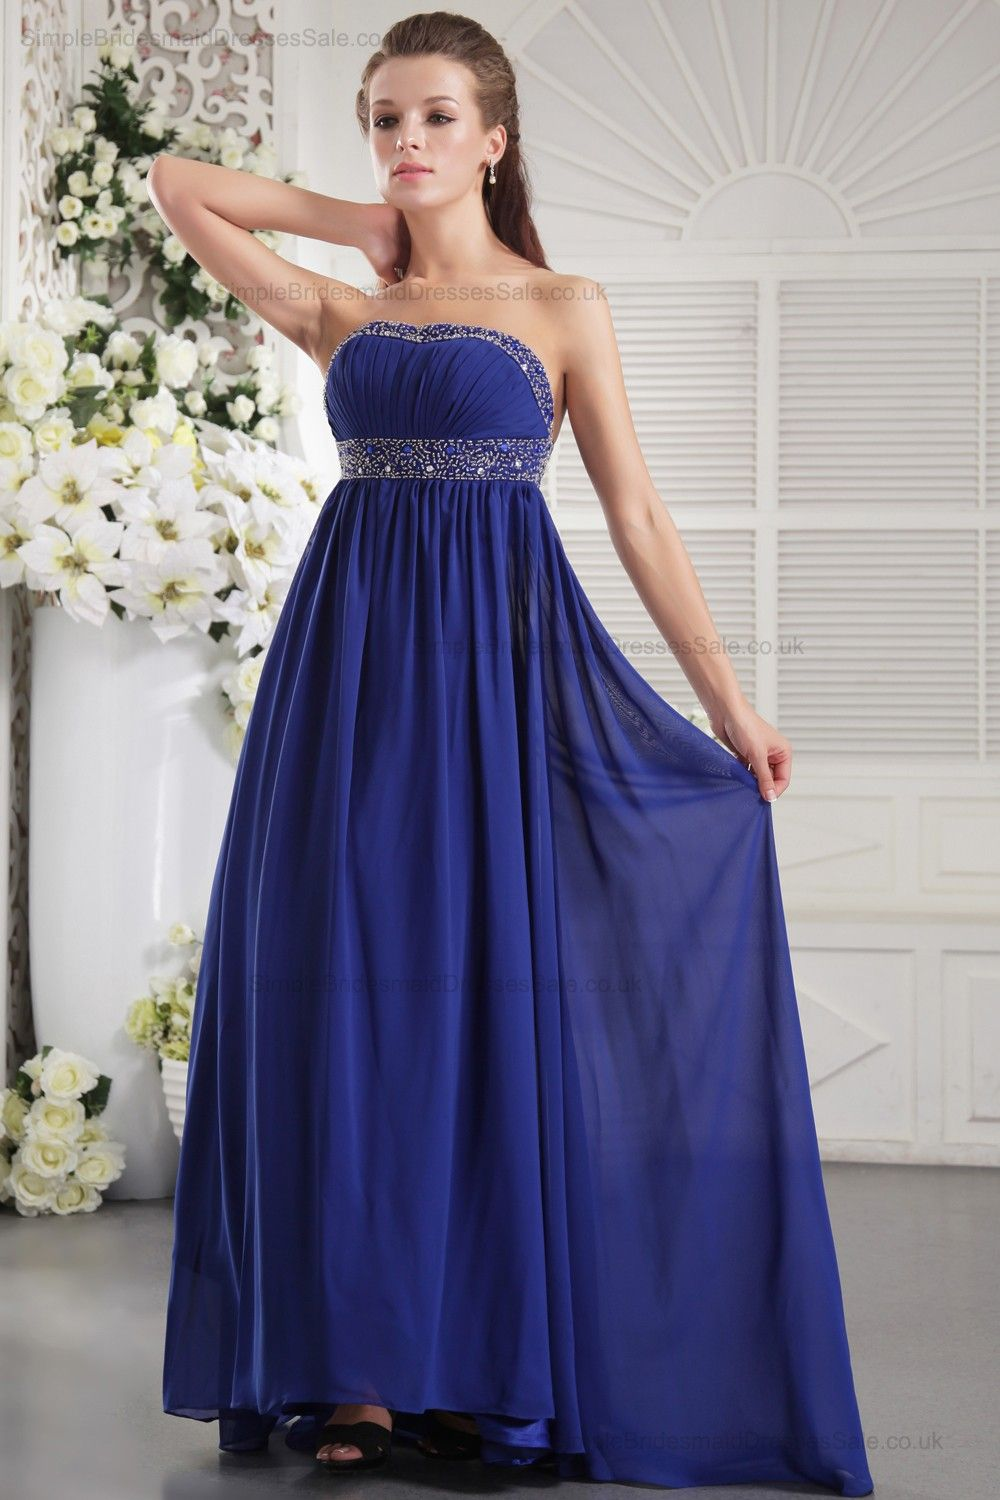 Chiffon blue bridesmaid dress blue bridesmaid dresses chiffon blue bridesmaid dress ombrellifo Image collections